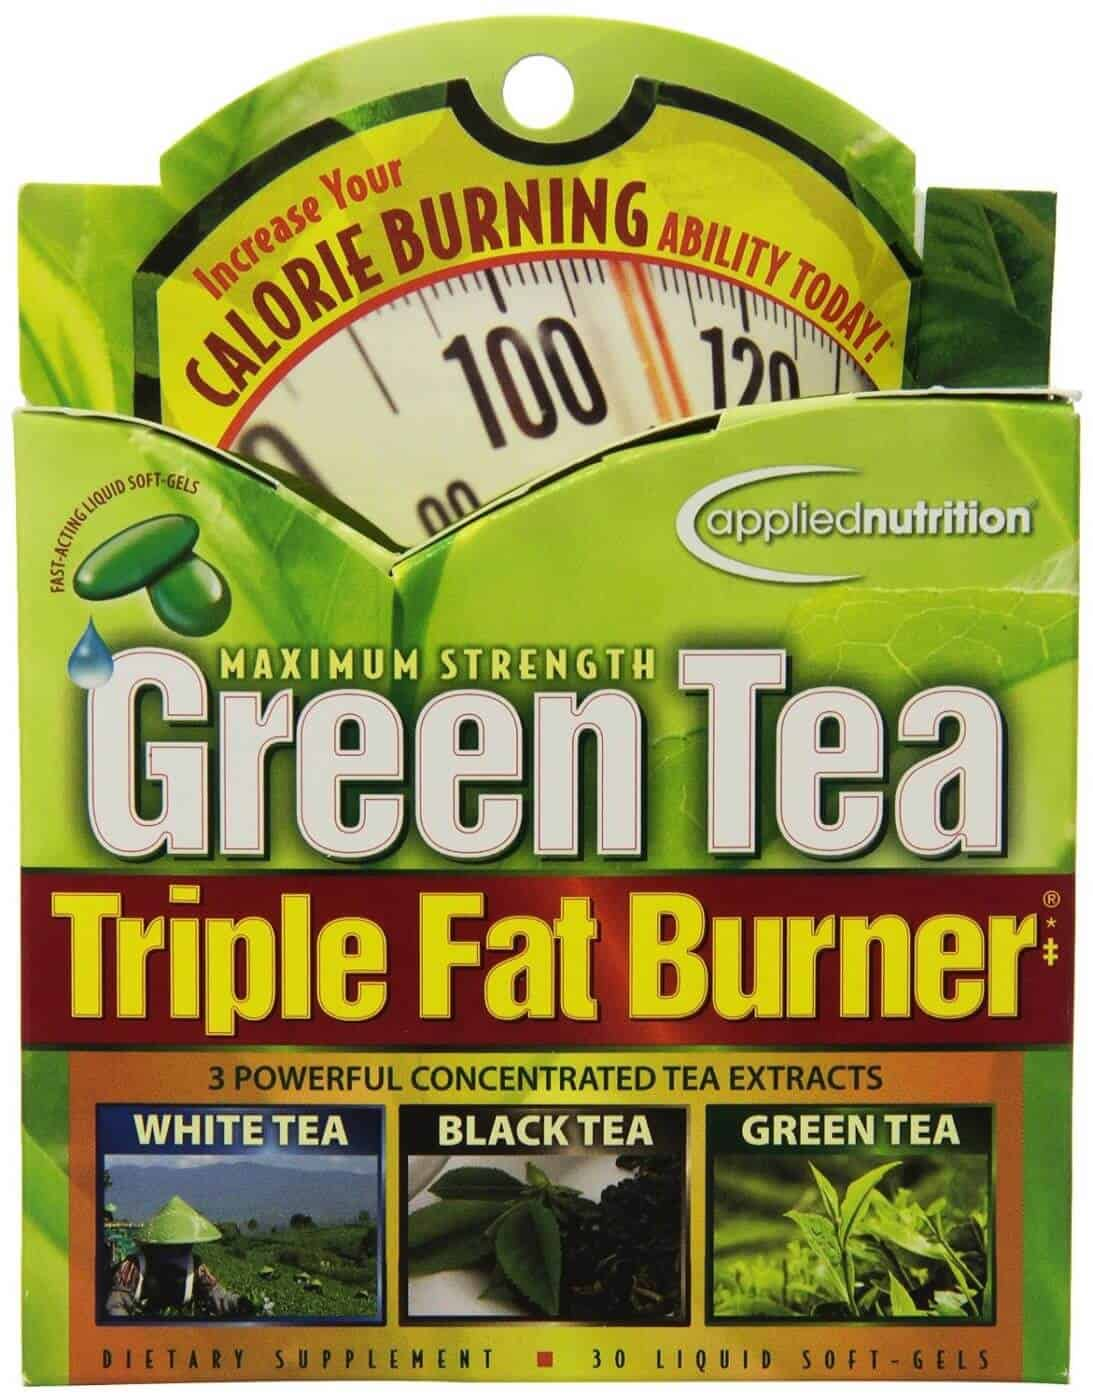 triple action burner meal replacement reviews